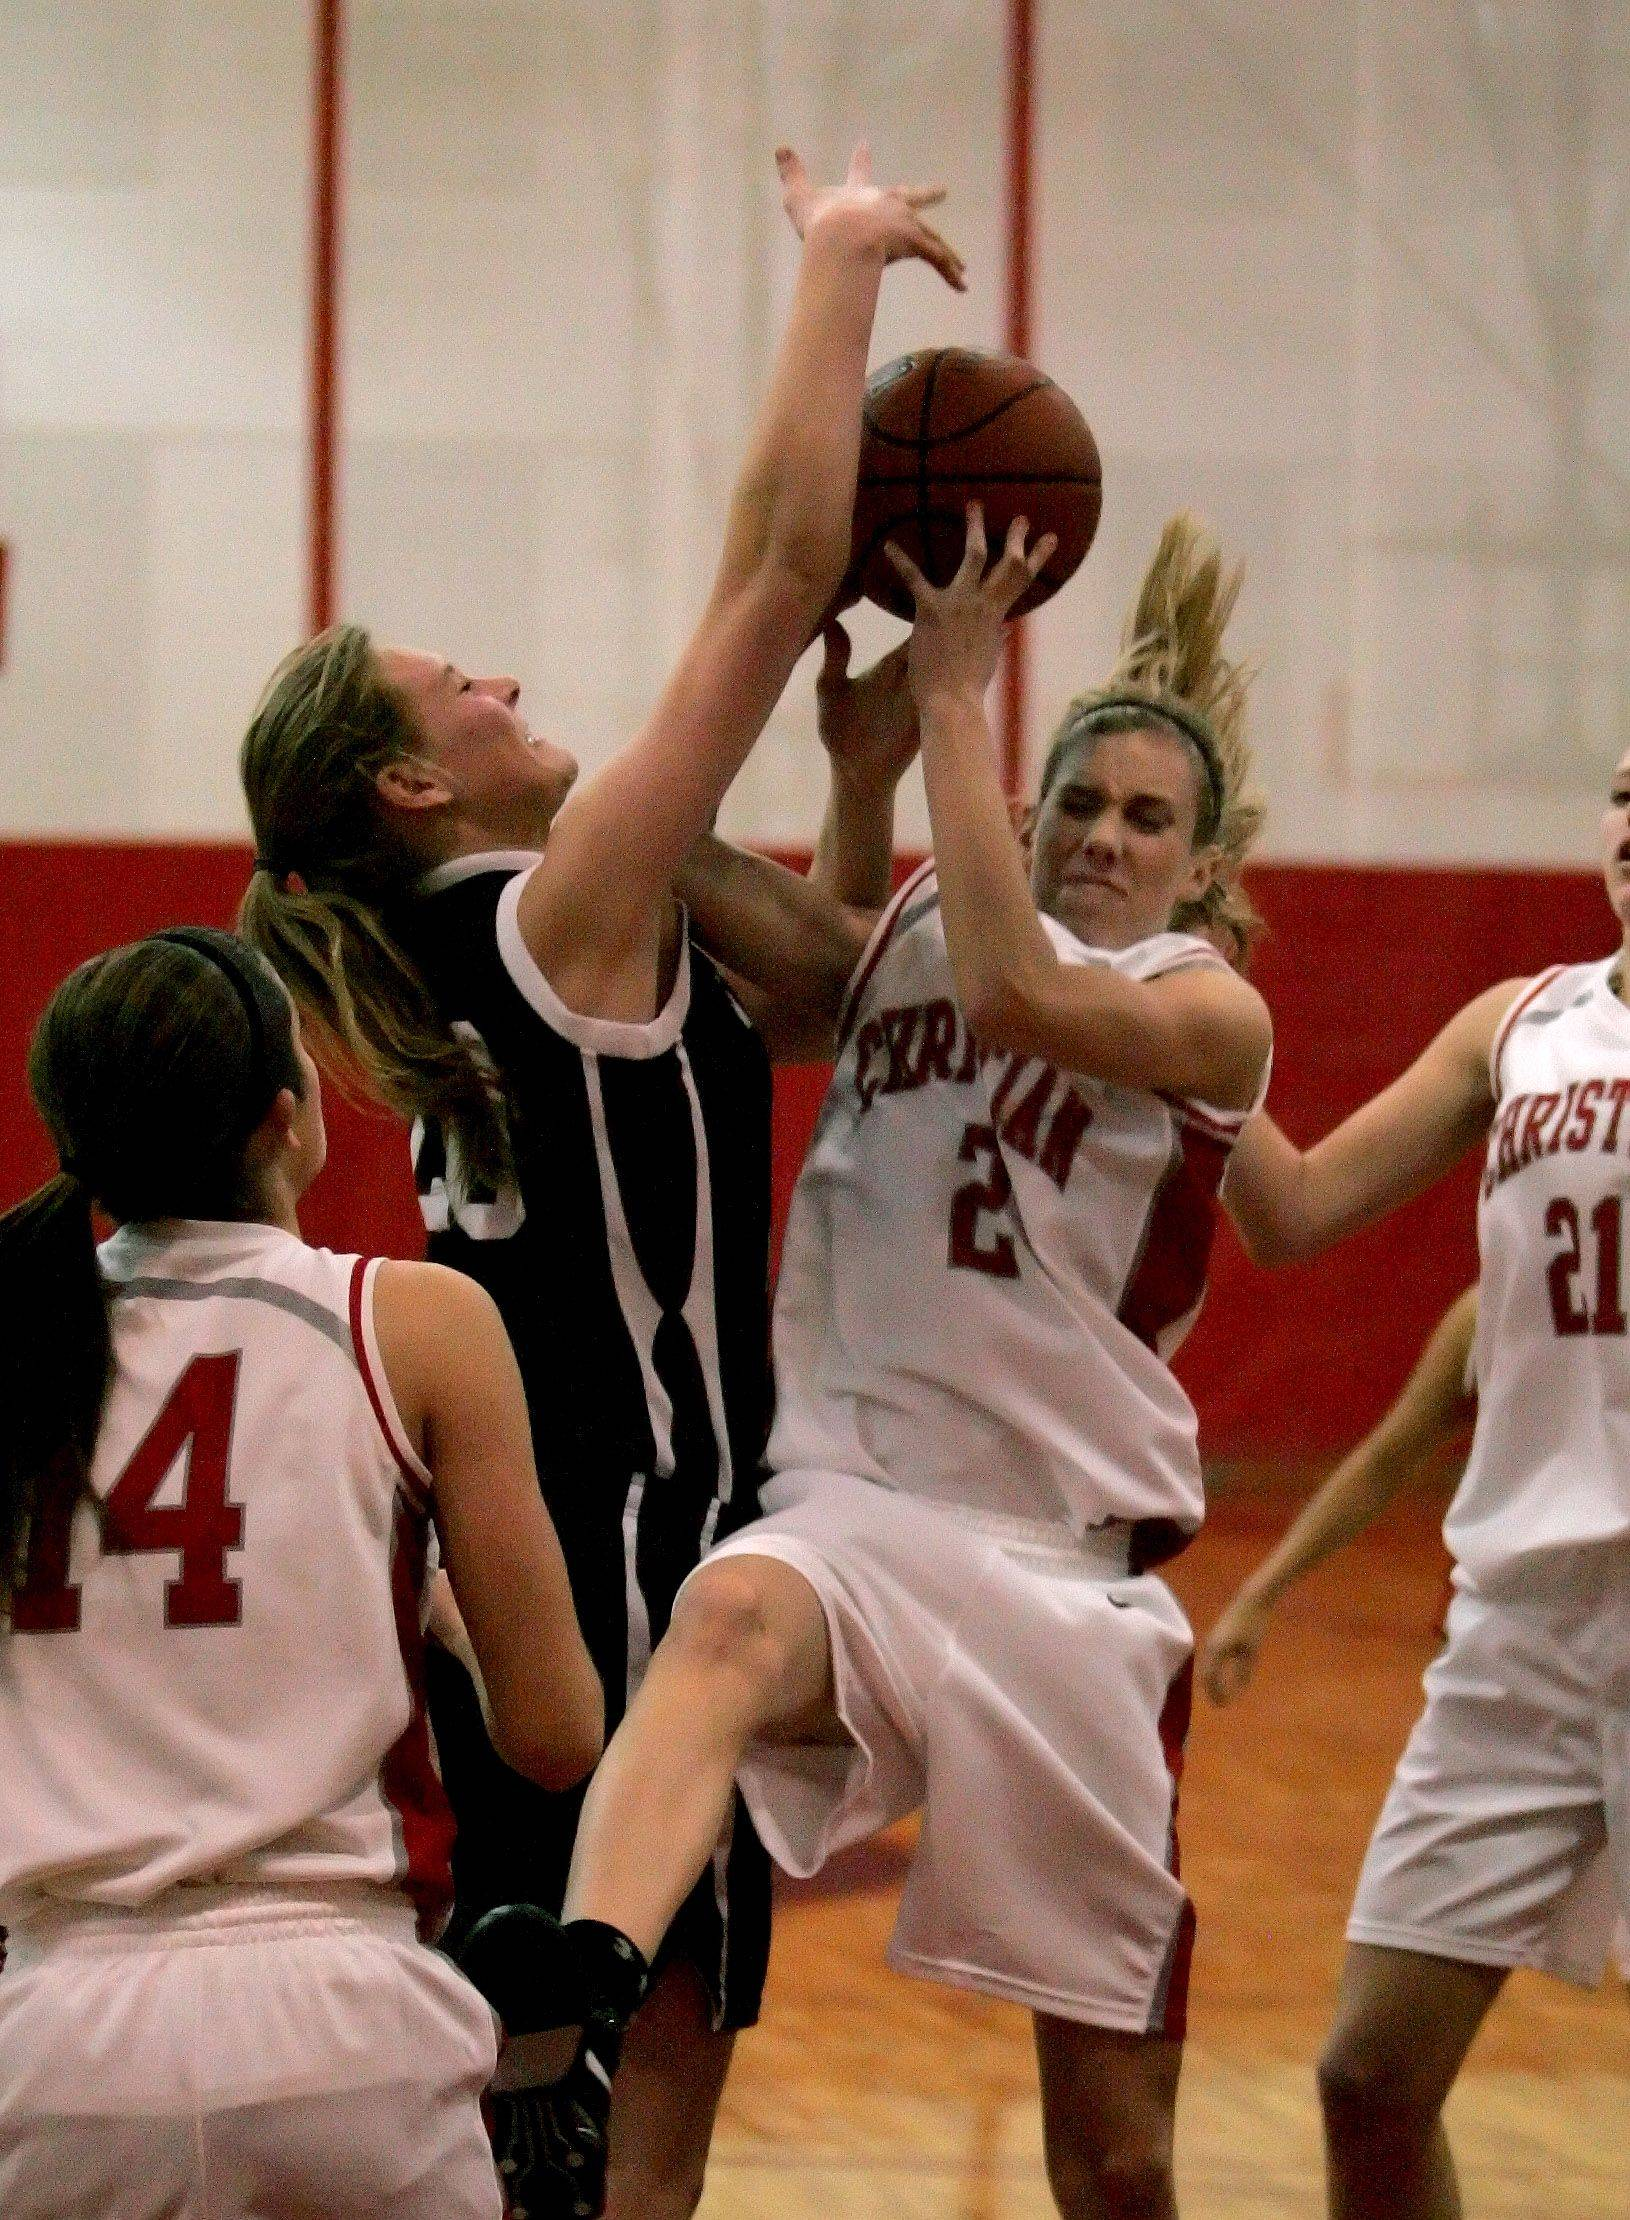 Sarah Drury of Wheaton Academy, left, prevents Mackenzie Bollinger, right of Aurora Christian, from making a shot.